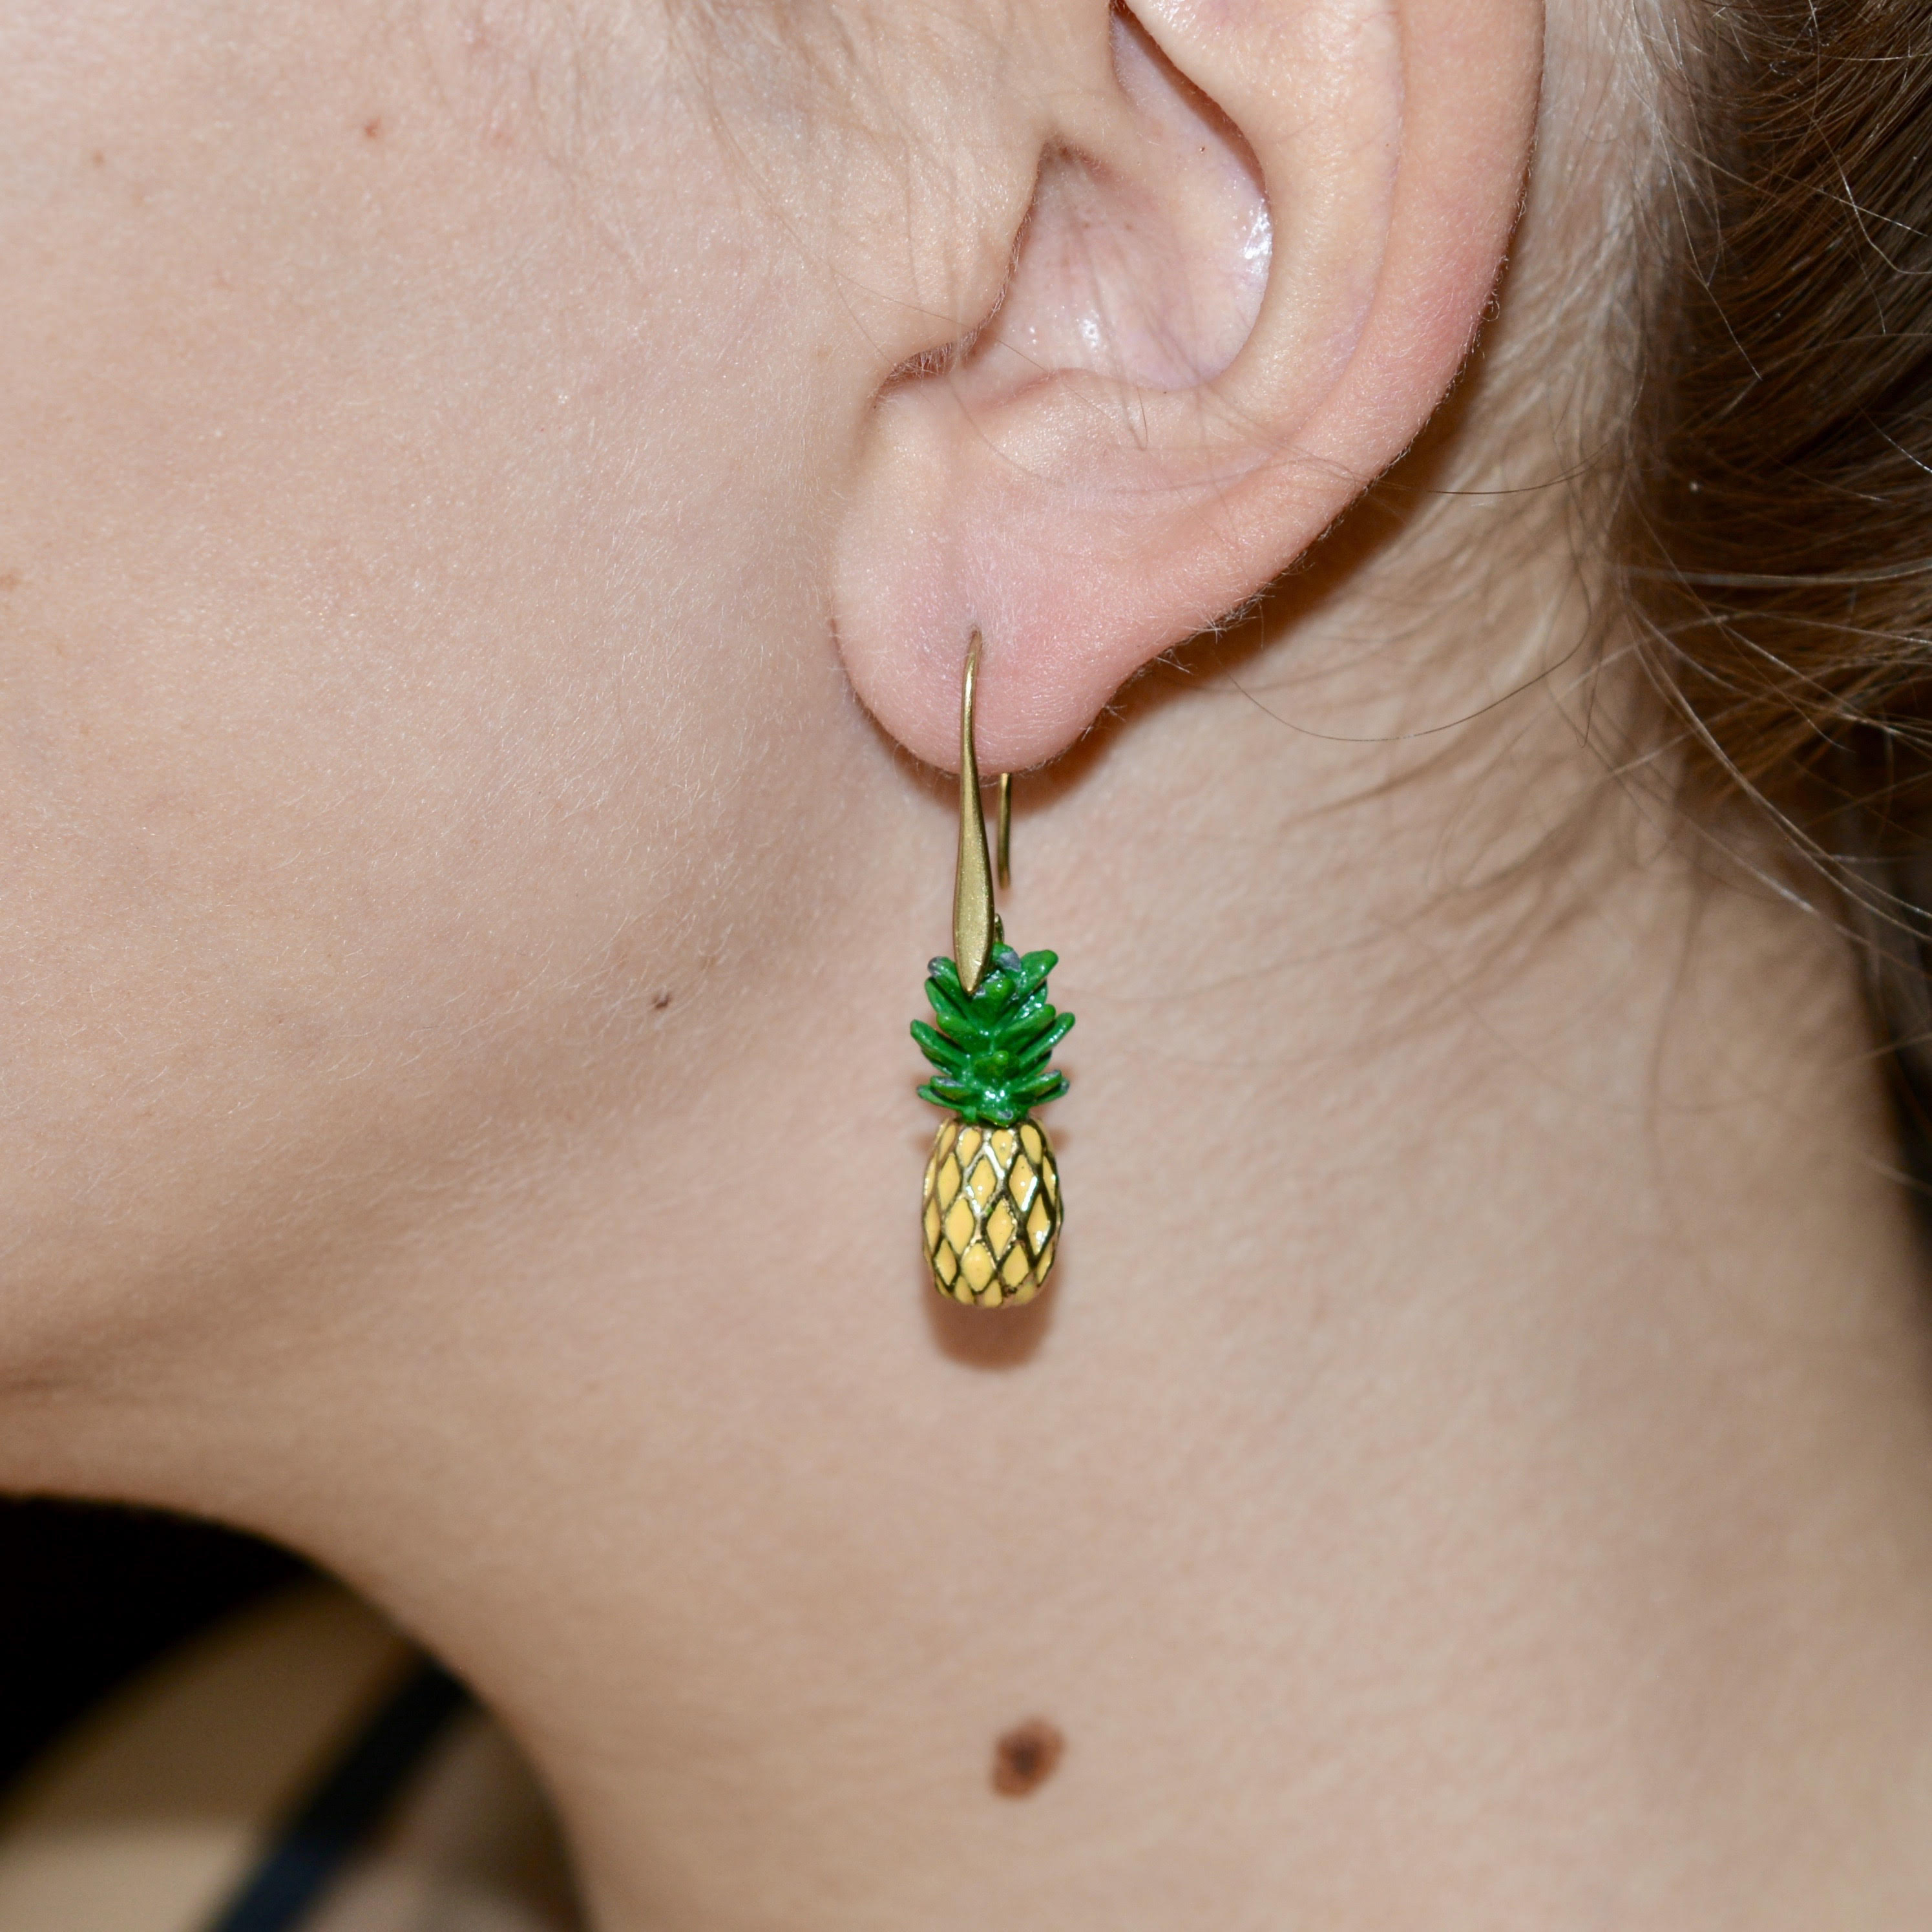 GREAT SUCCESS EARRINGS FOR ALL // PINA